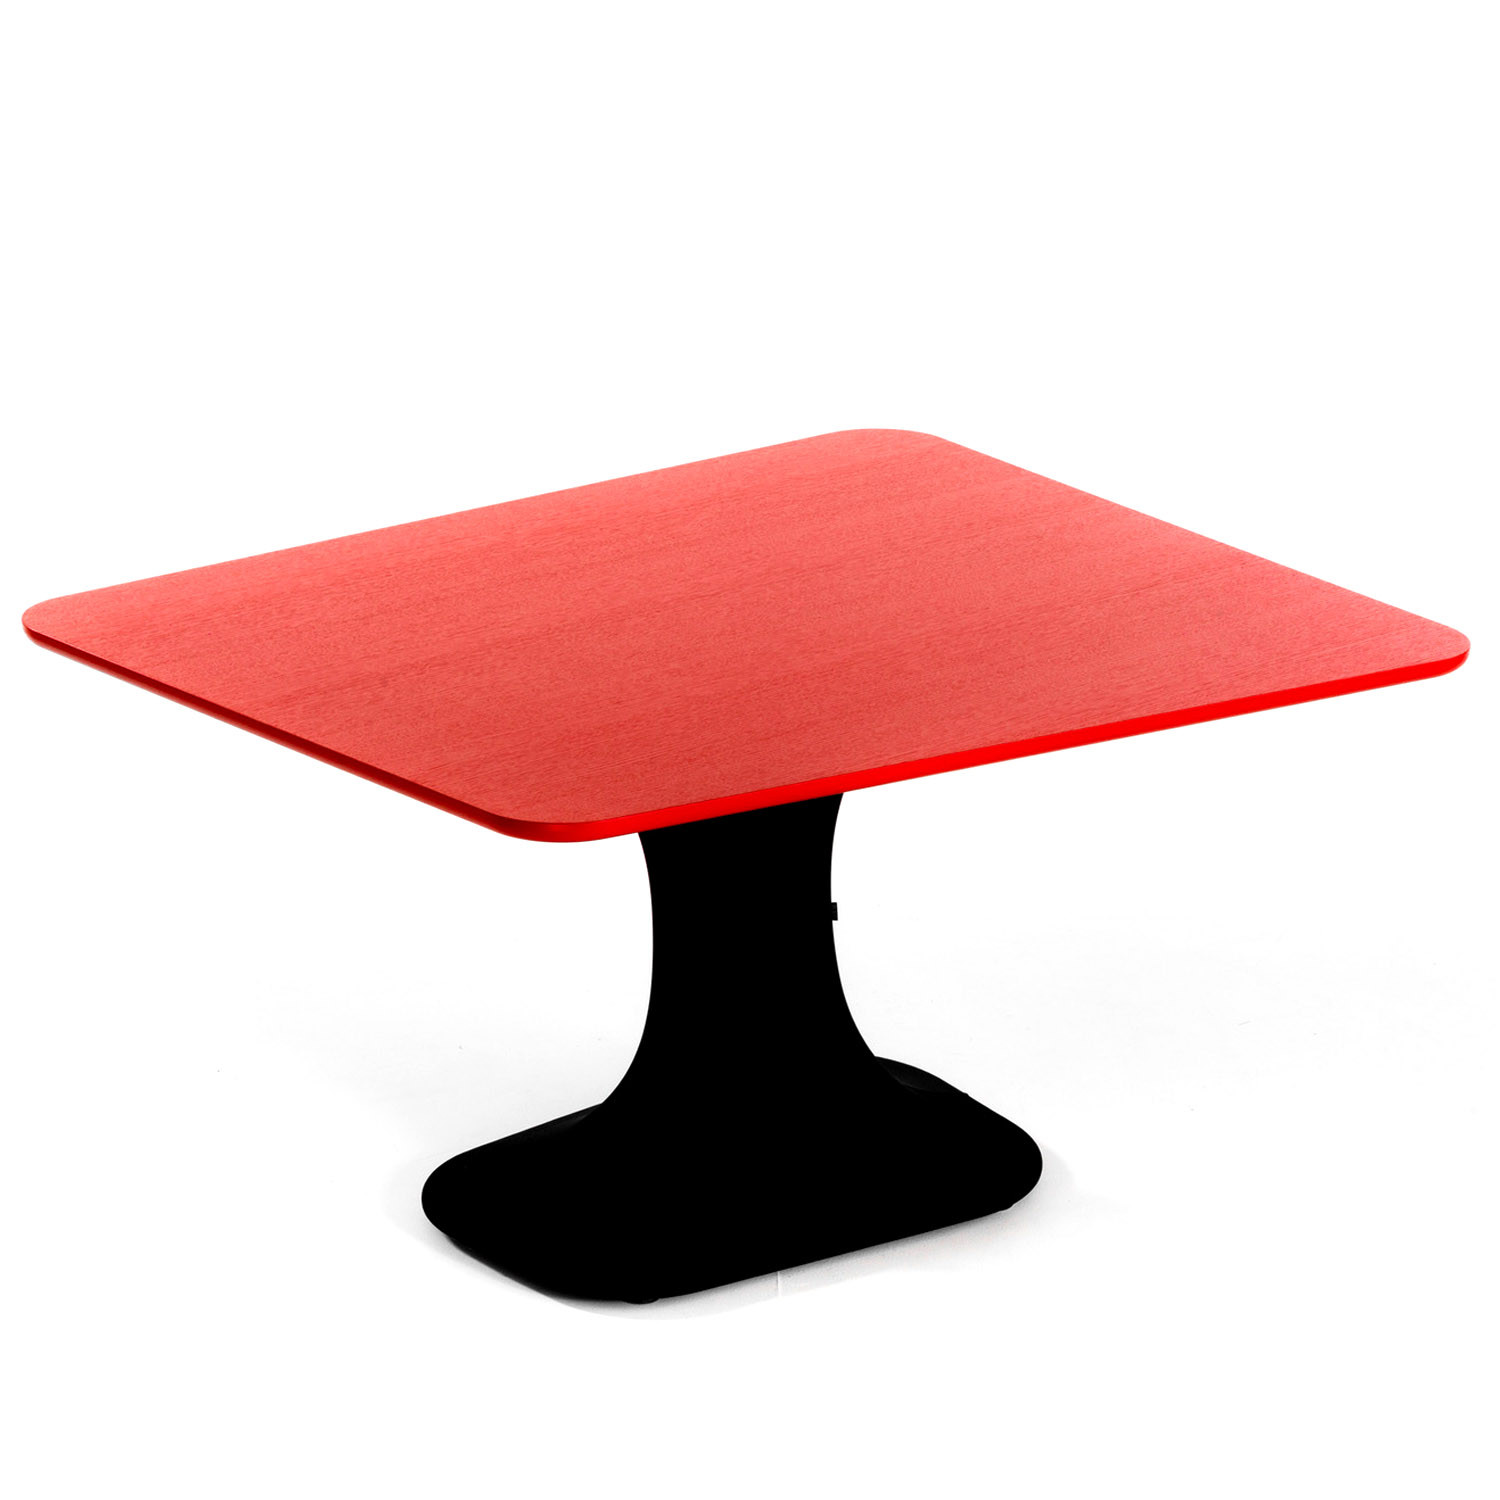 Kei Office Meeting Table